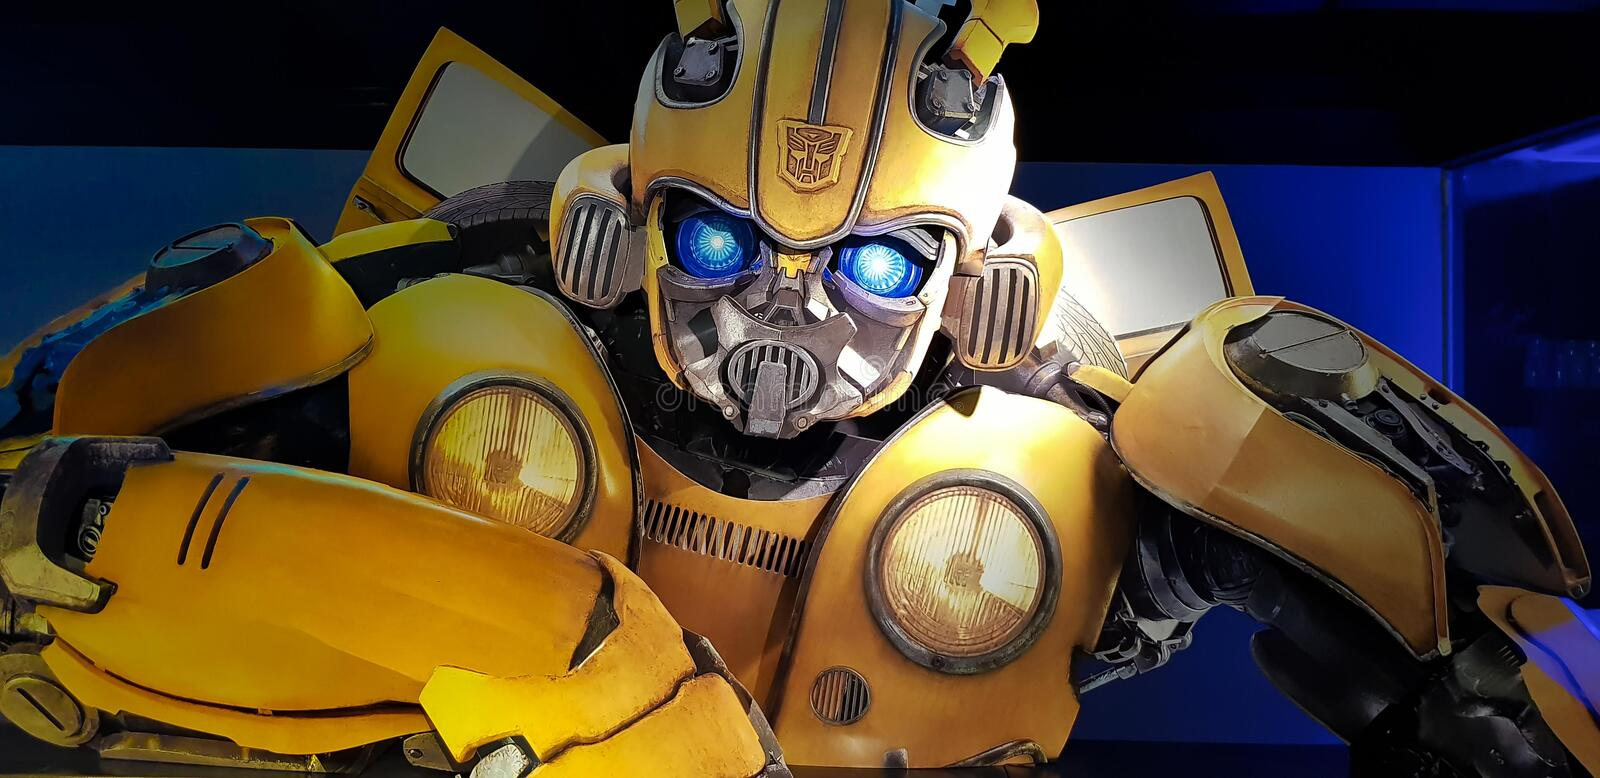 Bumblebee Movie Poster royalty free stock image